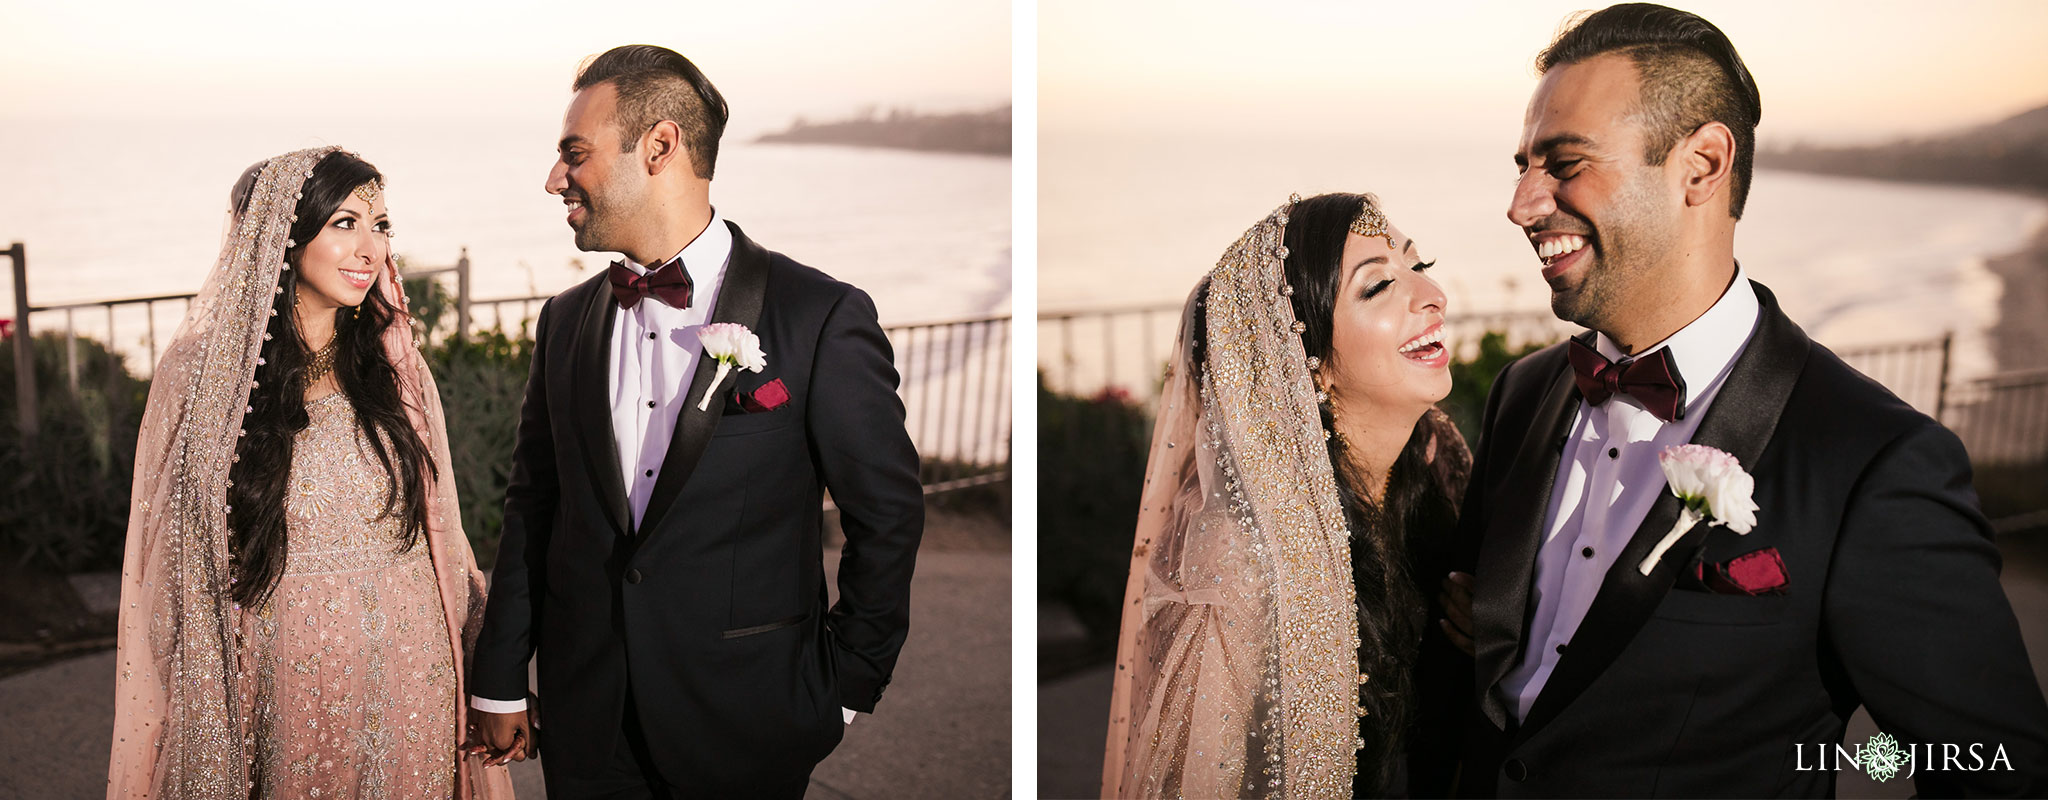 024 ritz carlton laguna niguel south asian wedding photography